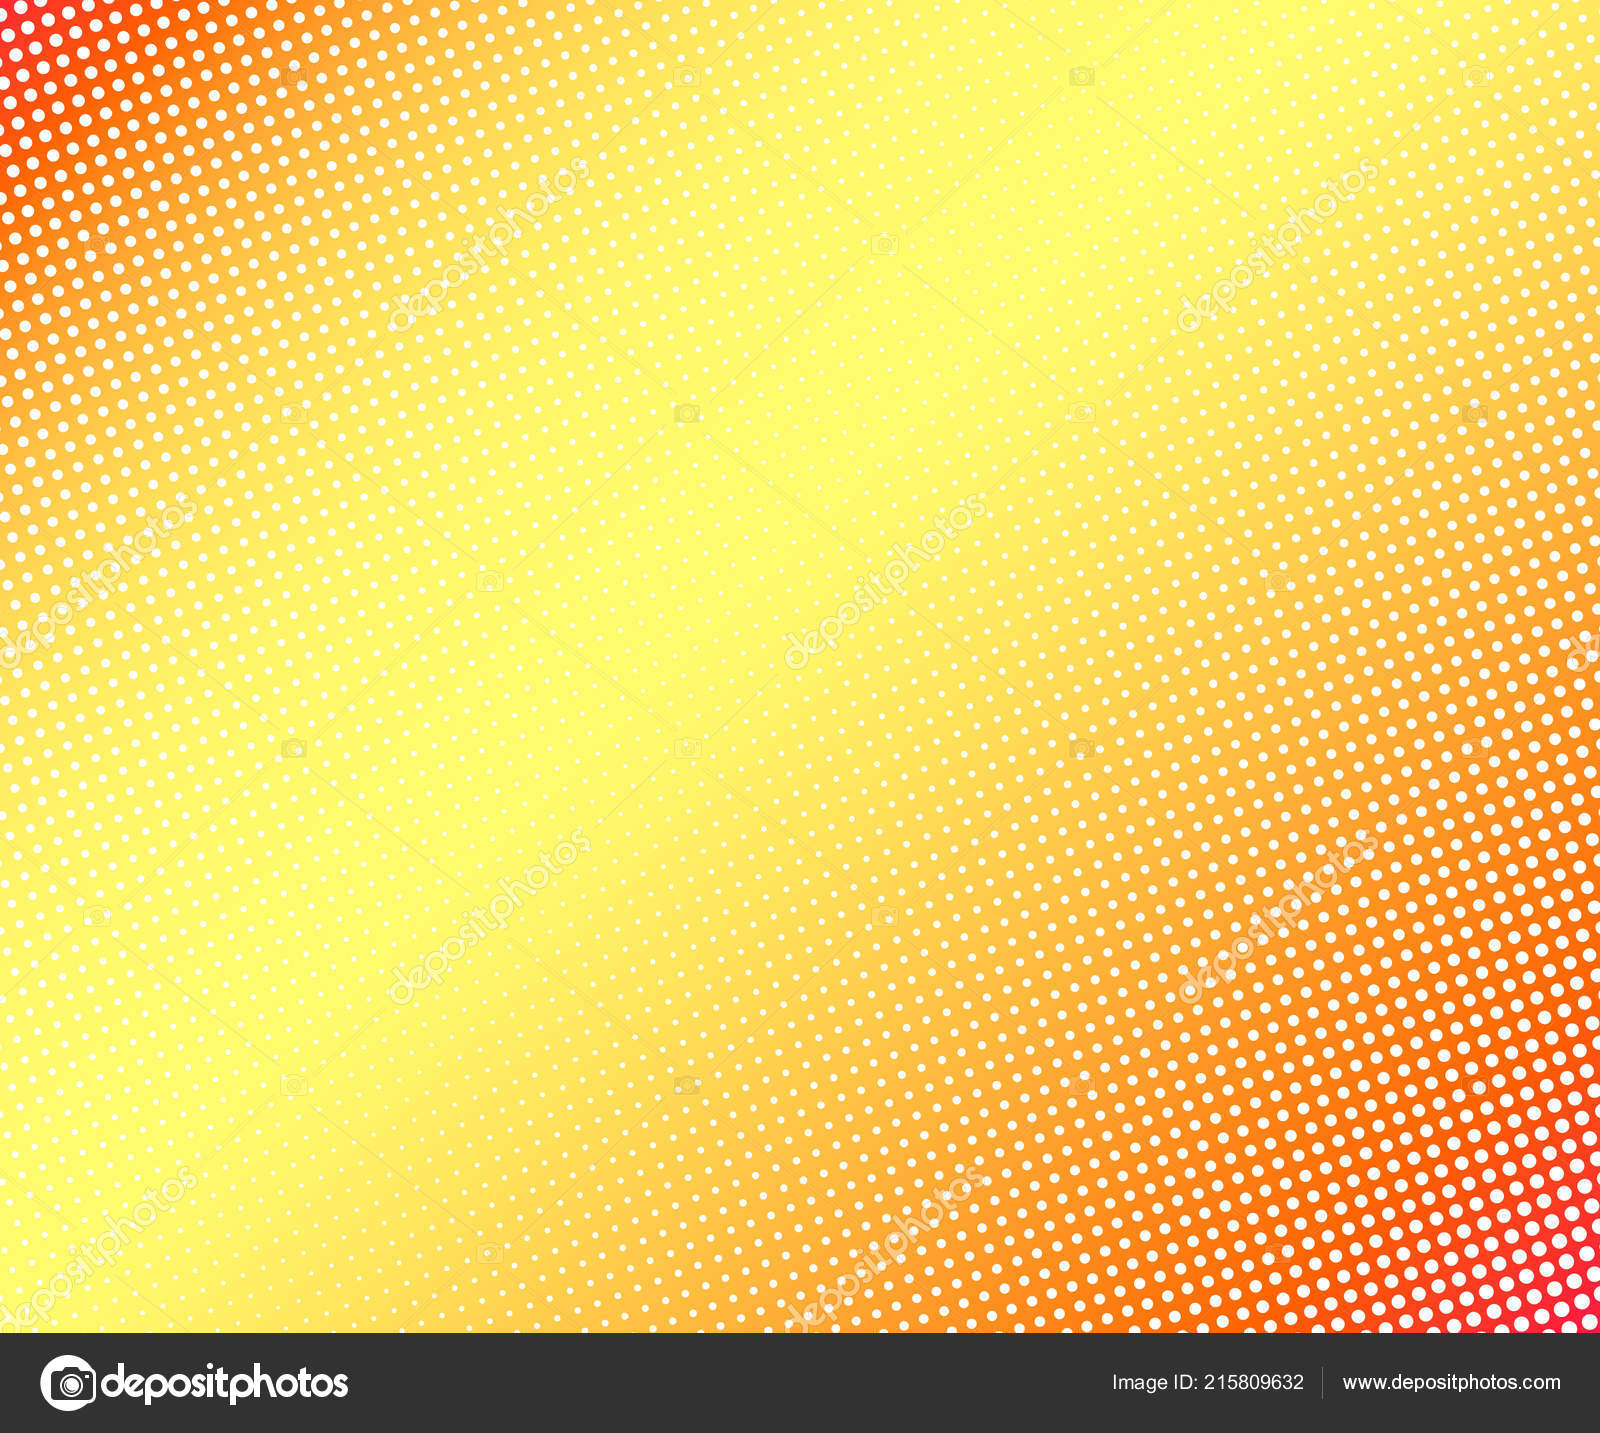 halftone design background vector illustration space text stock